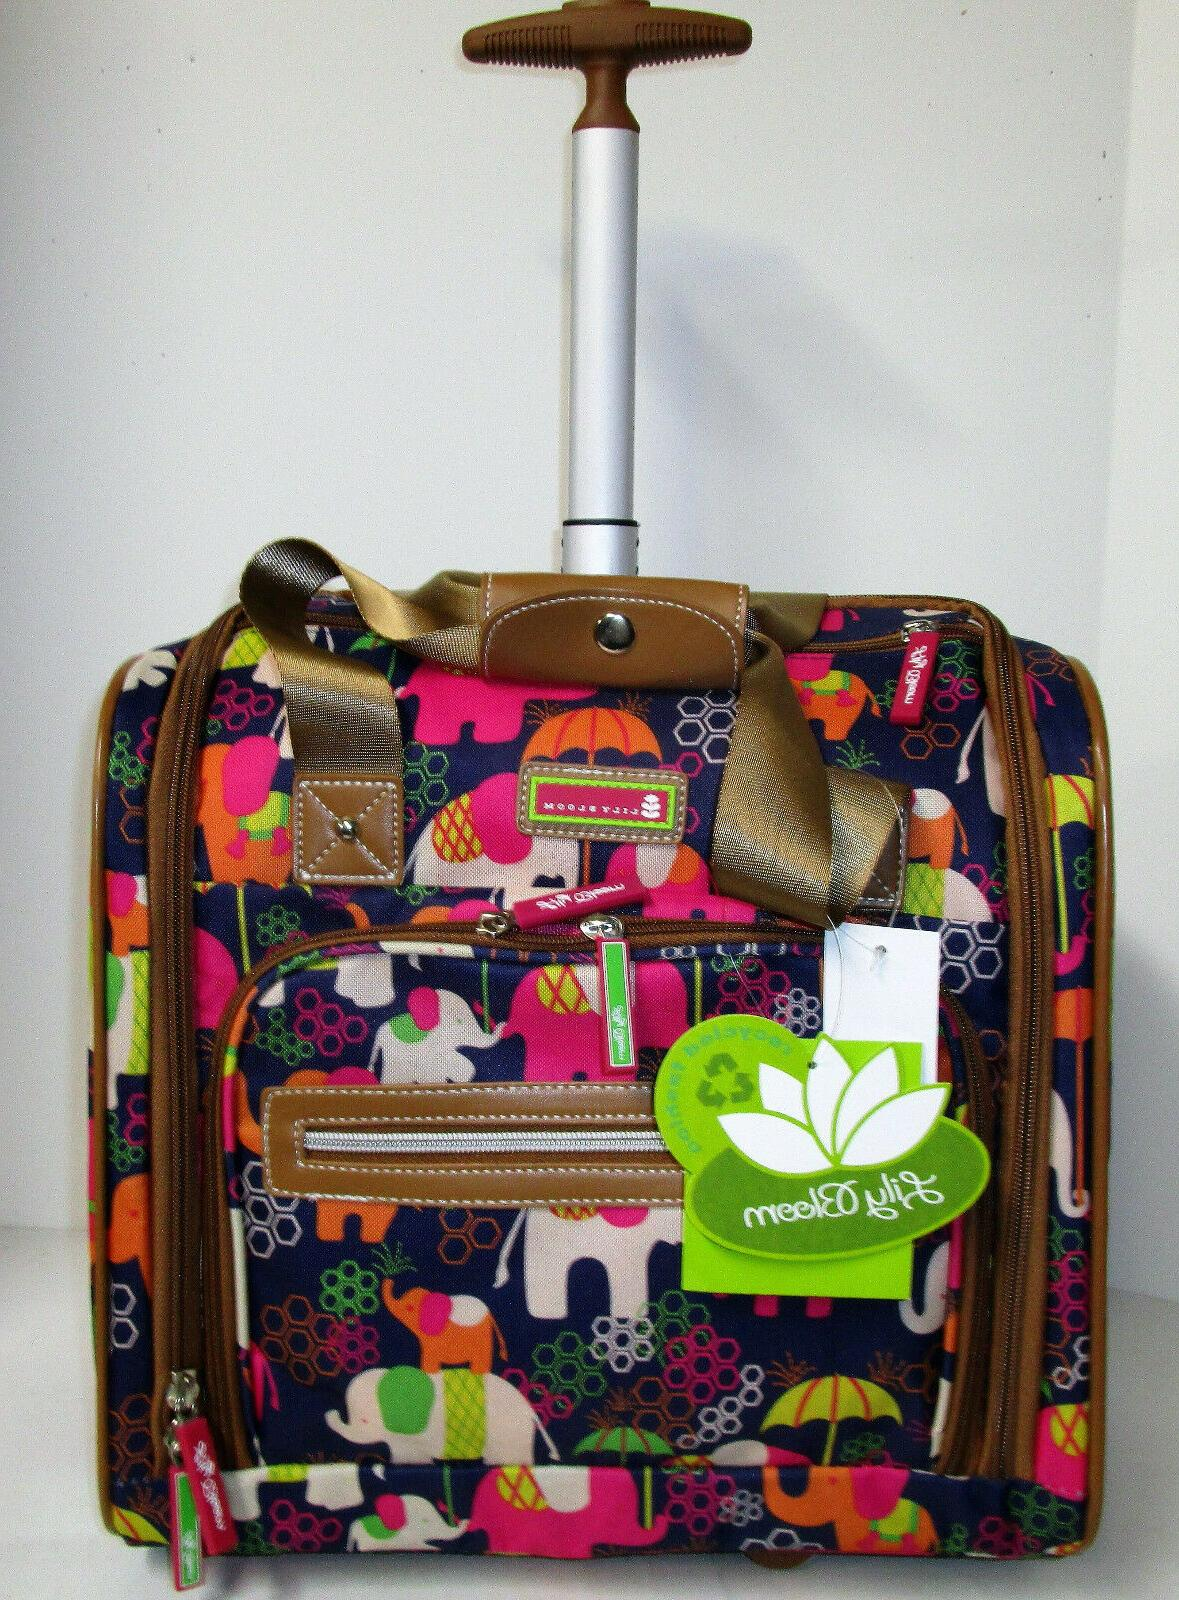 new under seat rolling carry on luggage